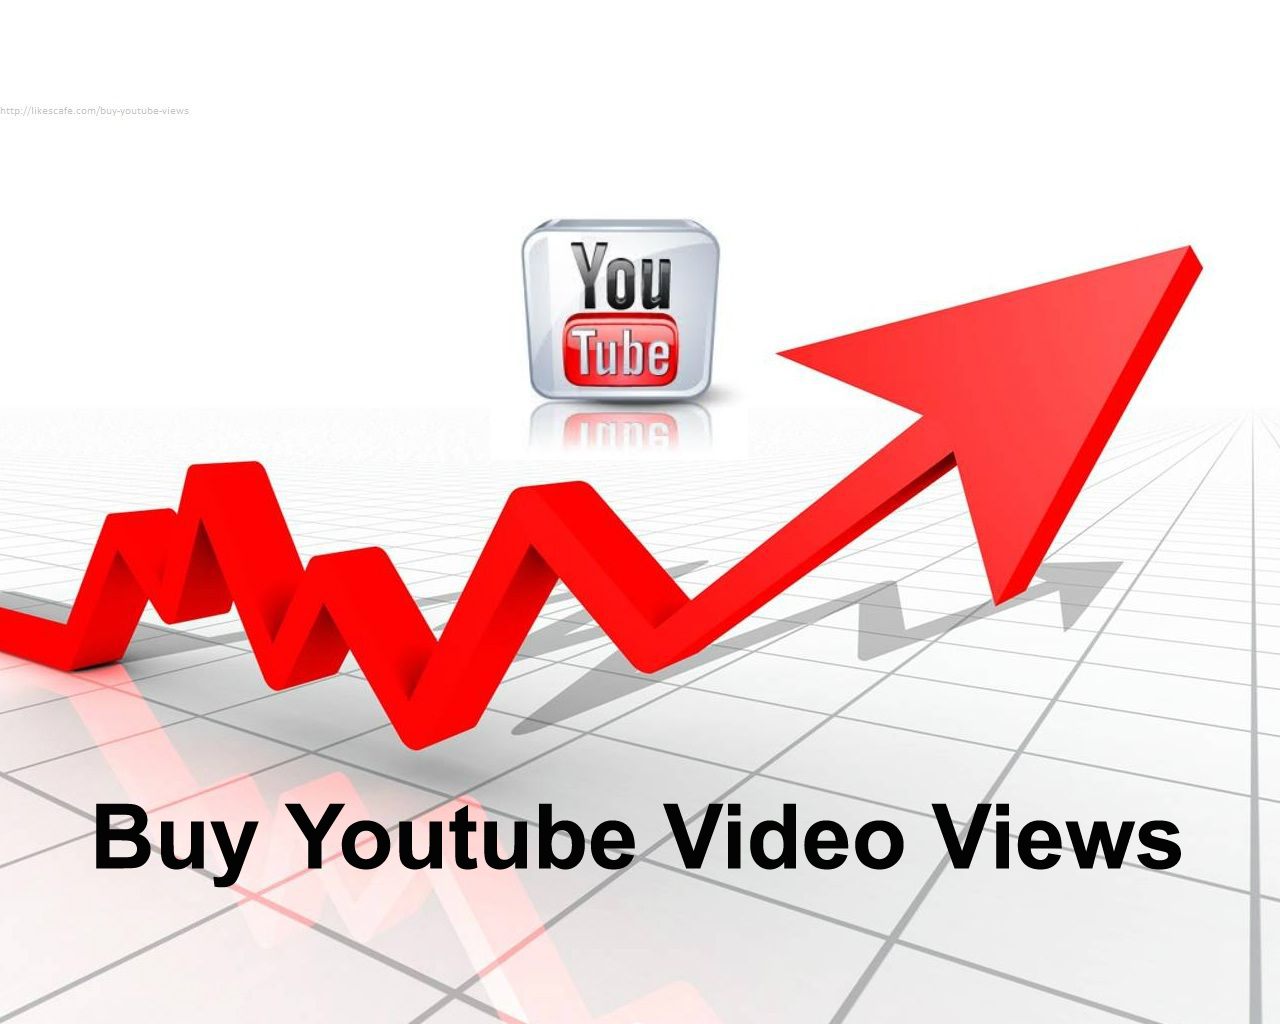 Getting to develop YouTube marketing strategy